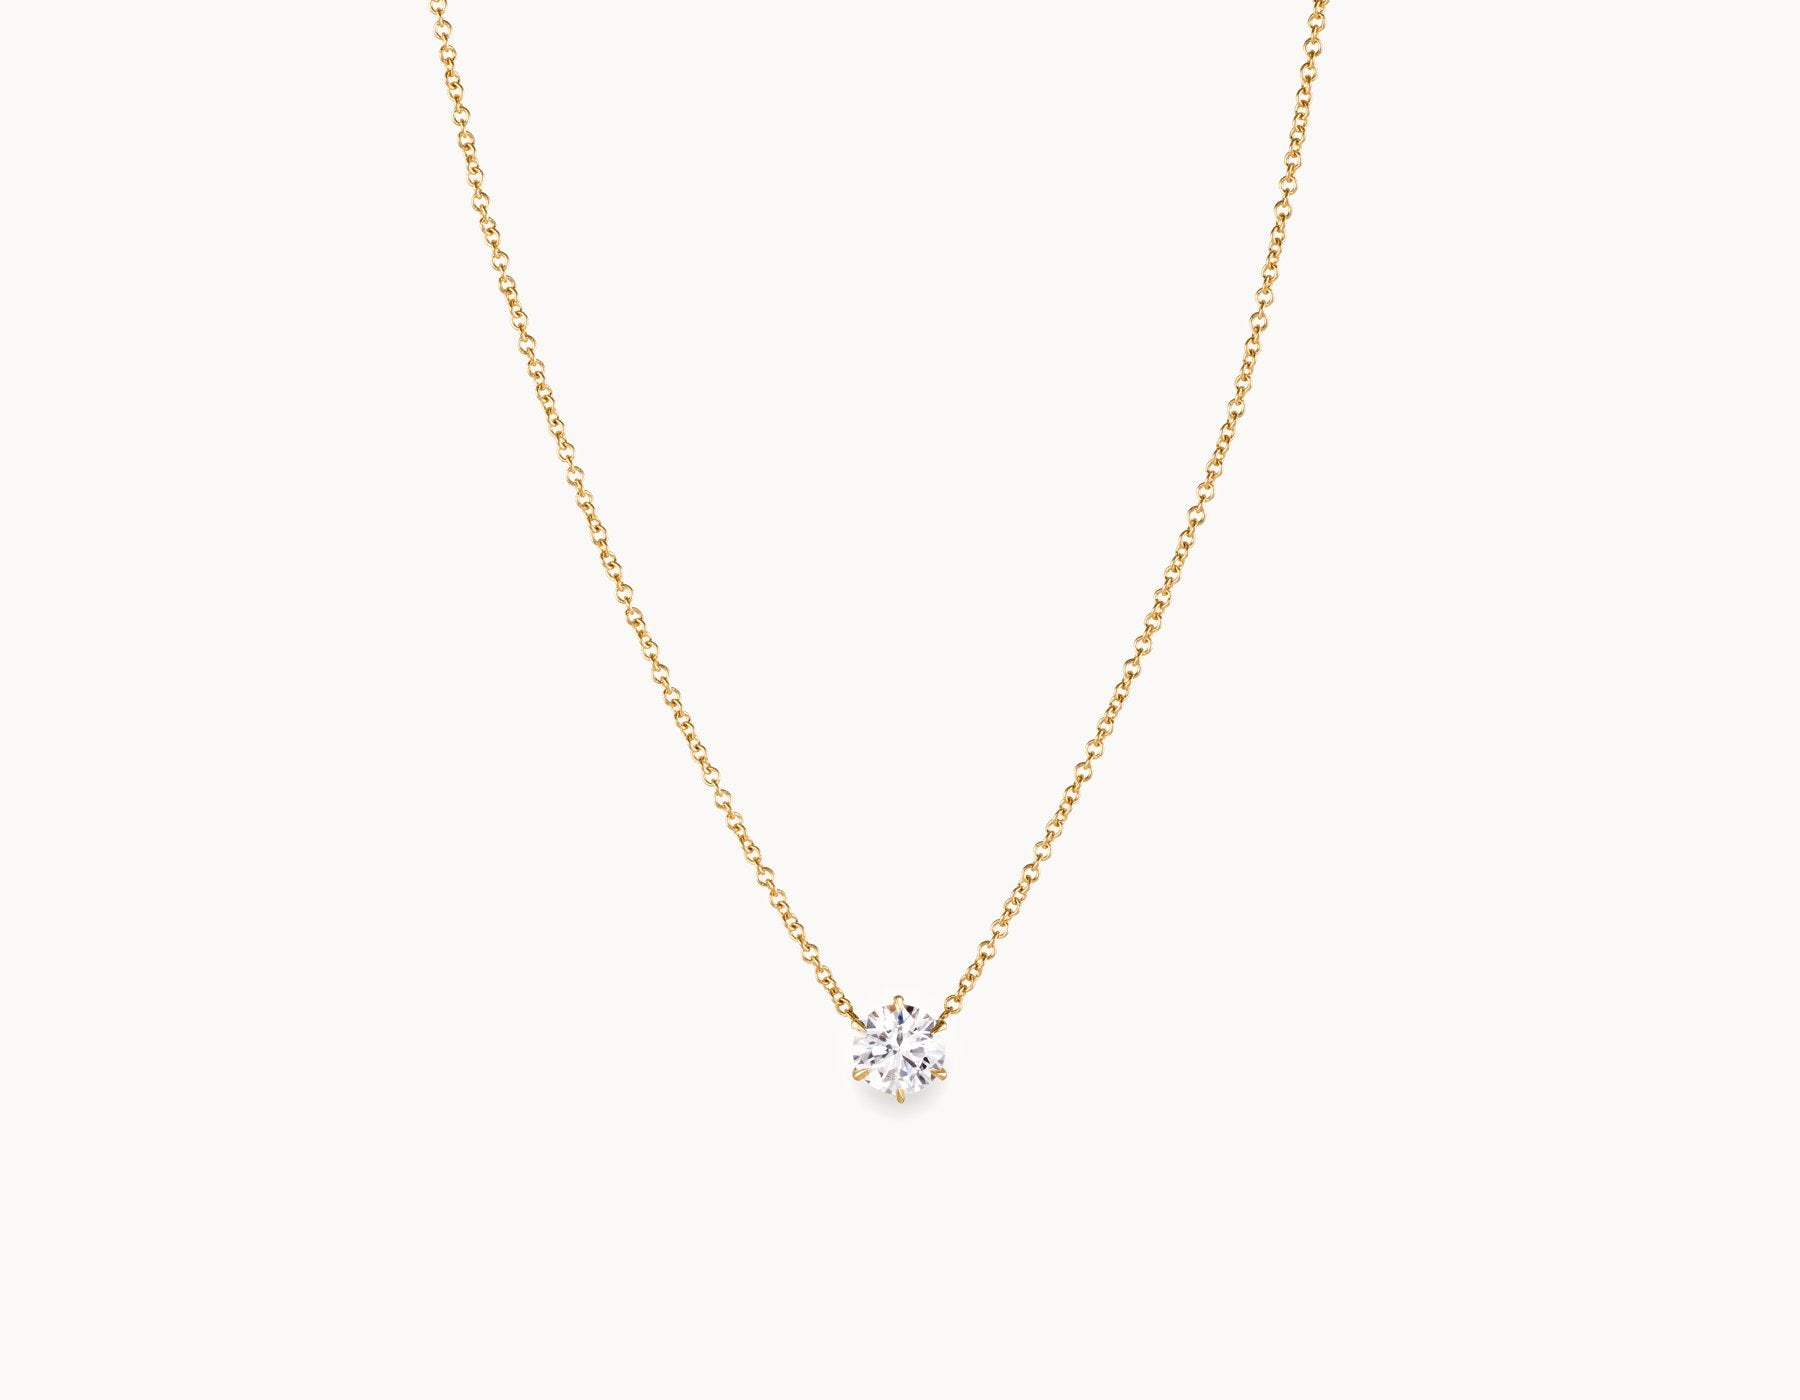 necklace at jewery gems maarten in diamond round pendant solitaire online stores and product sint store best dk